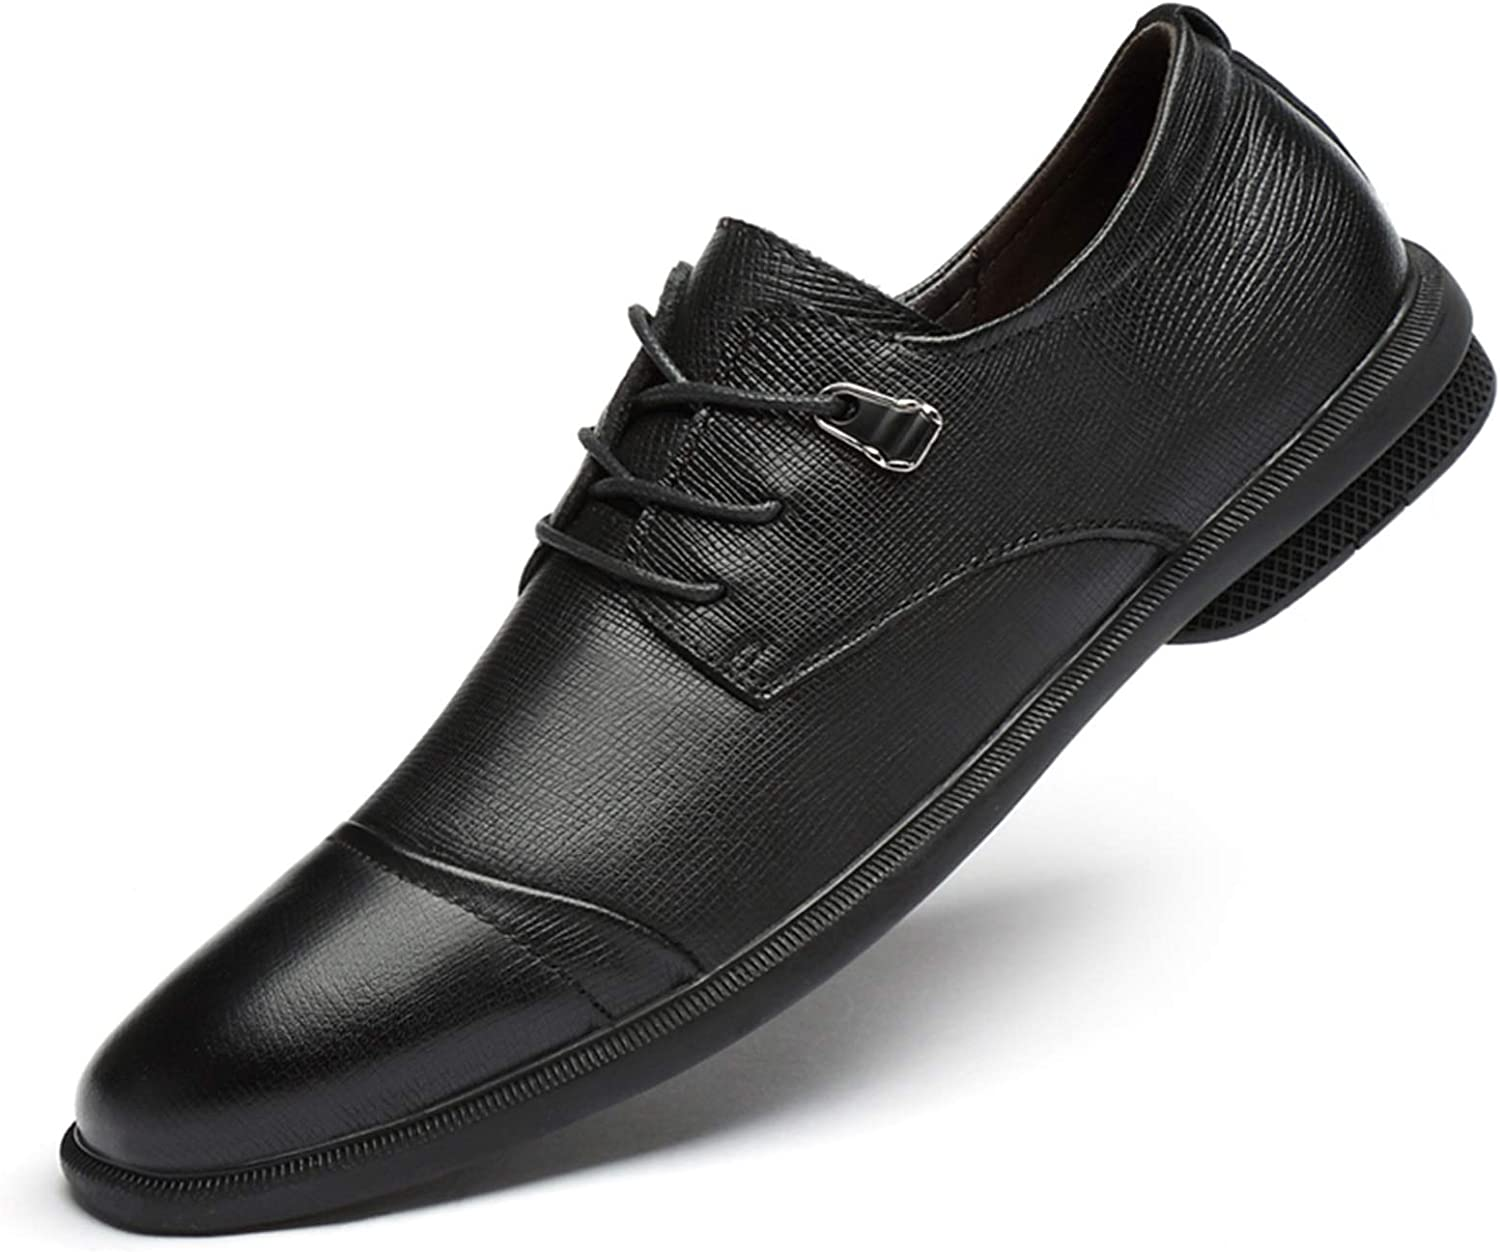 Yinuopu The Men wore Loafers Sale SALENEW very popular! price Men's Shoes S Dress Oxfords Leather